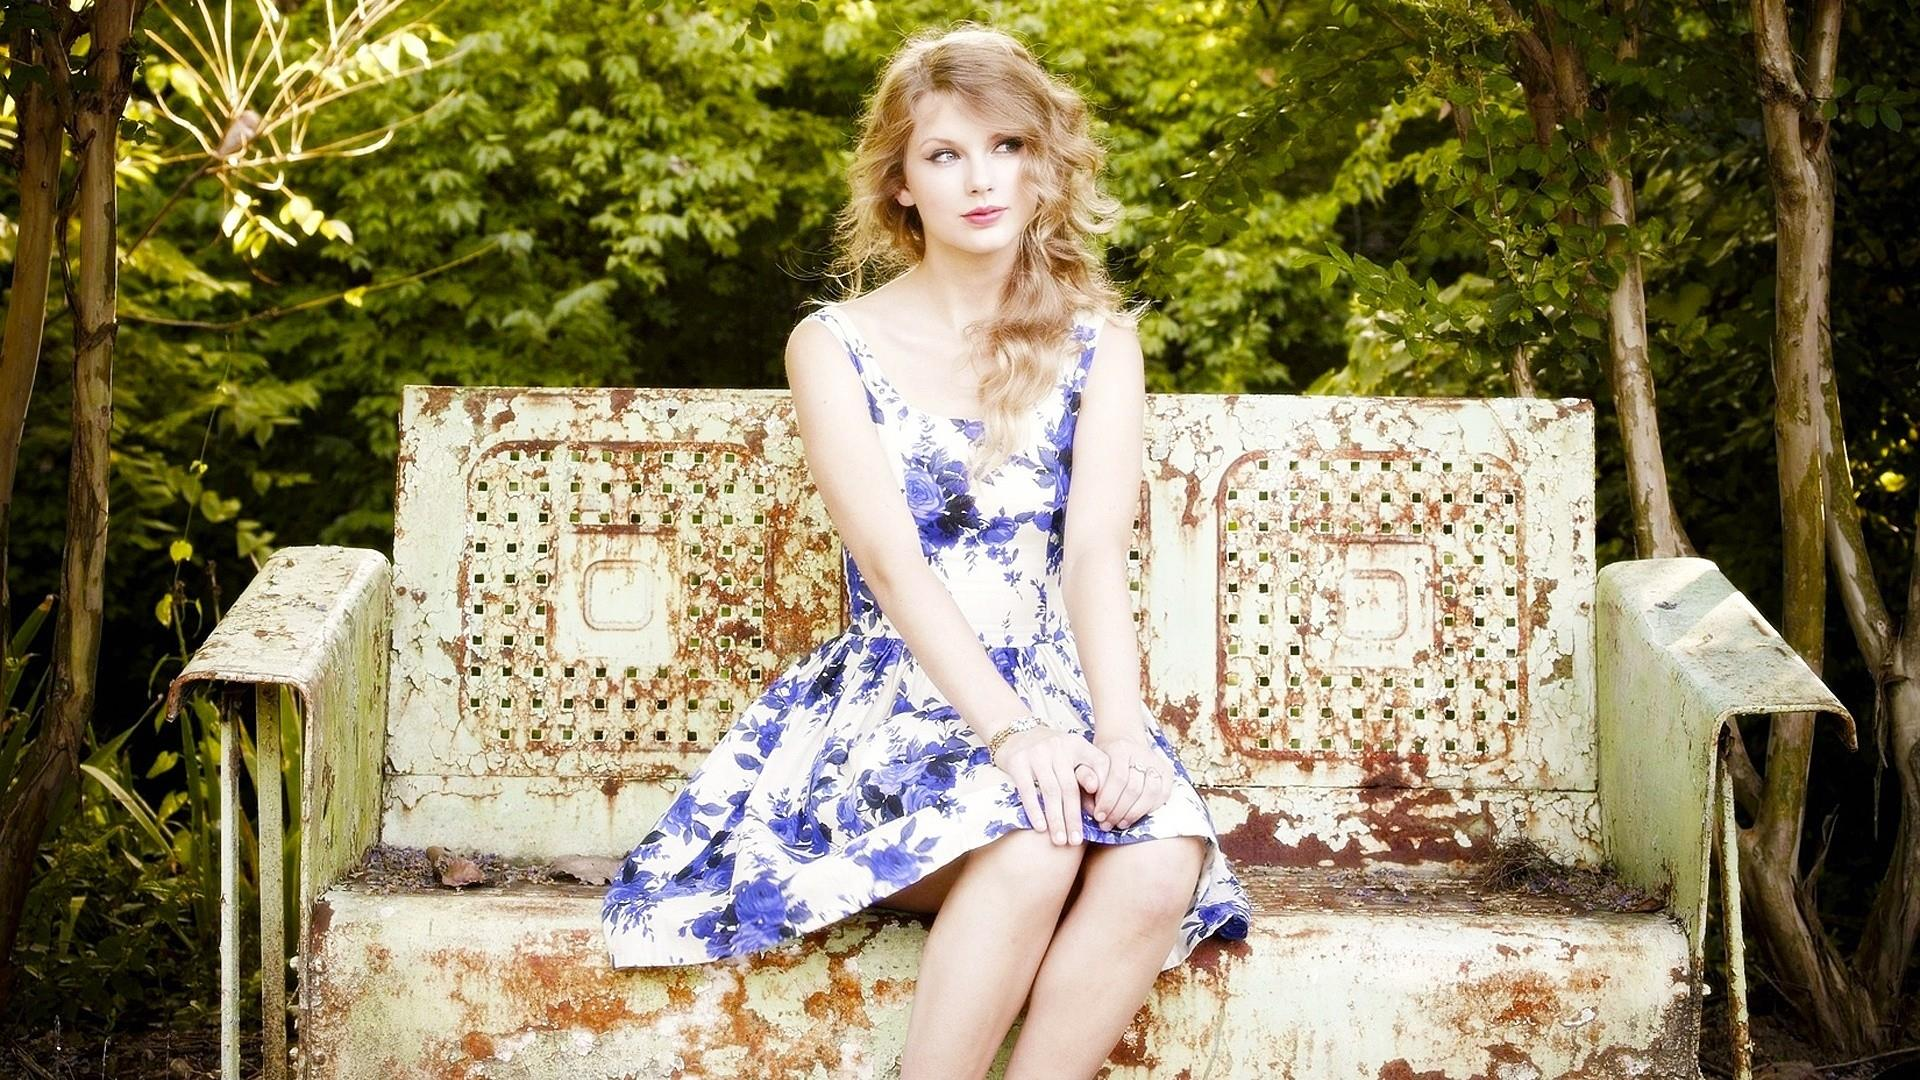 Taylor Swift Look Beautiful In Blue And White Dress